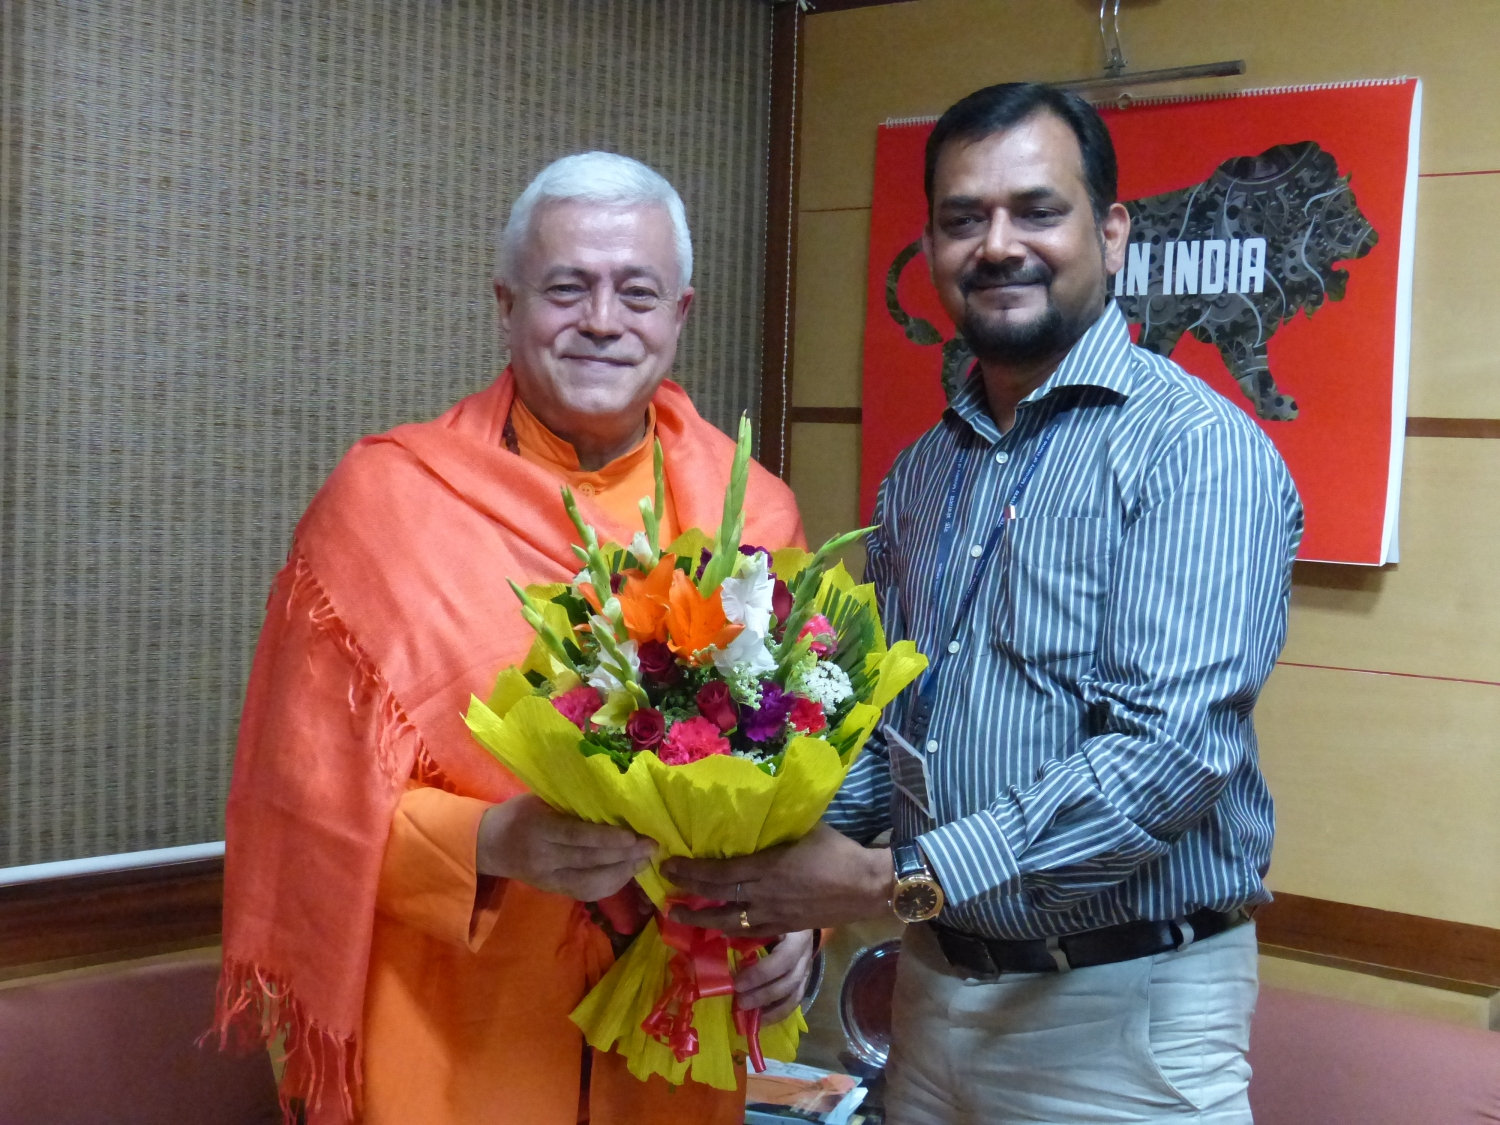 Com Dr. Ravi P. Singh, Secretário Geral do Quality Council of India - New Dillí